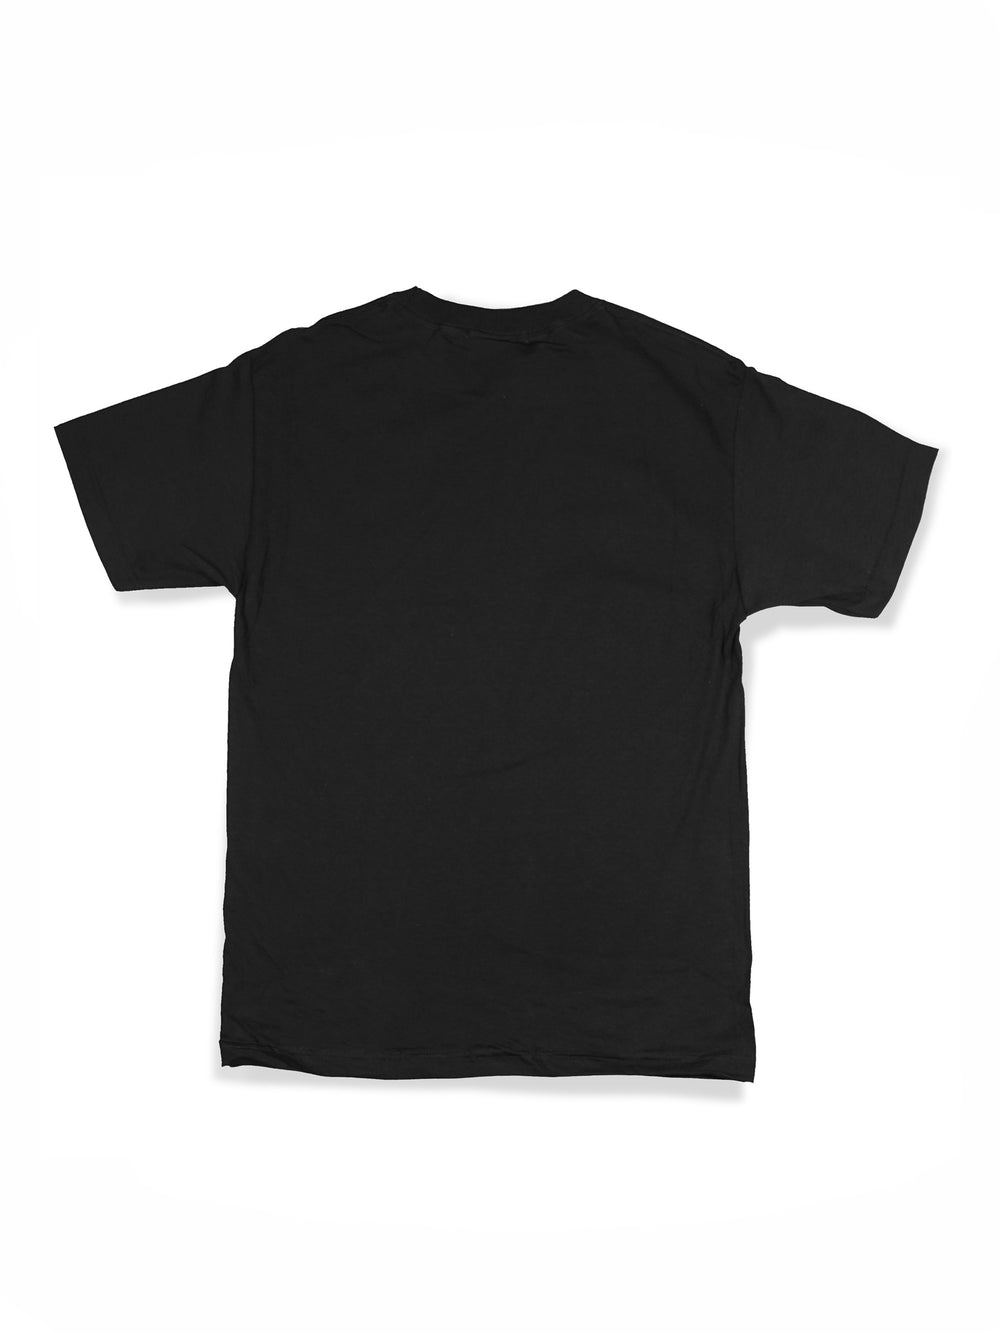 FT. LOGO TEE BLACK